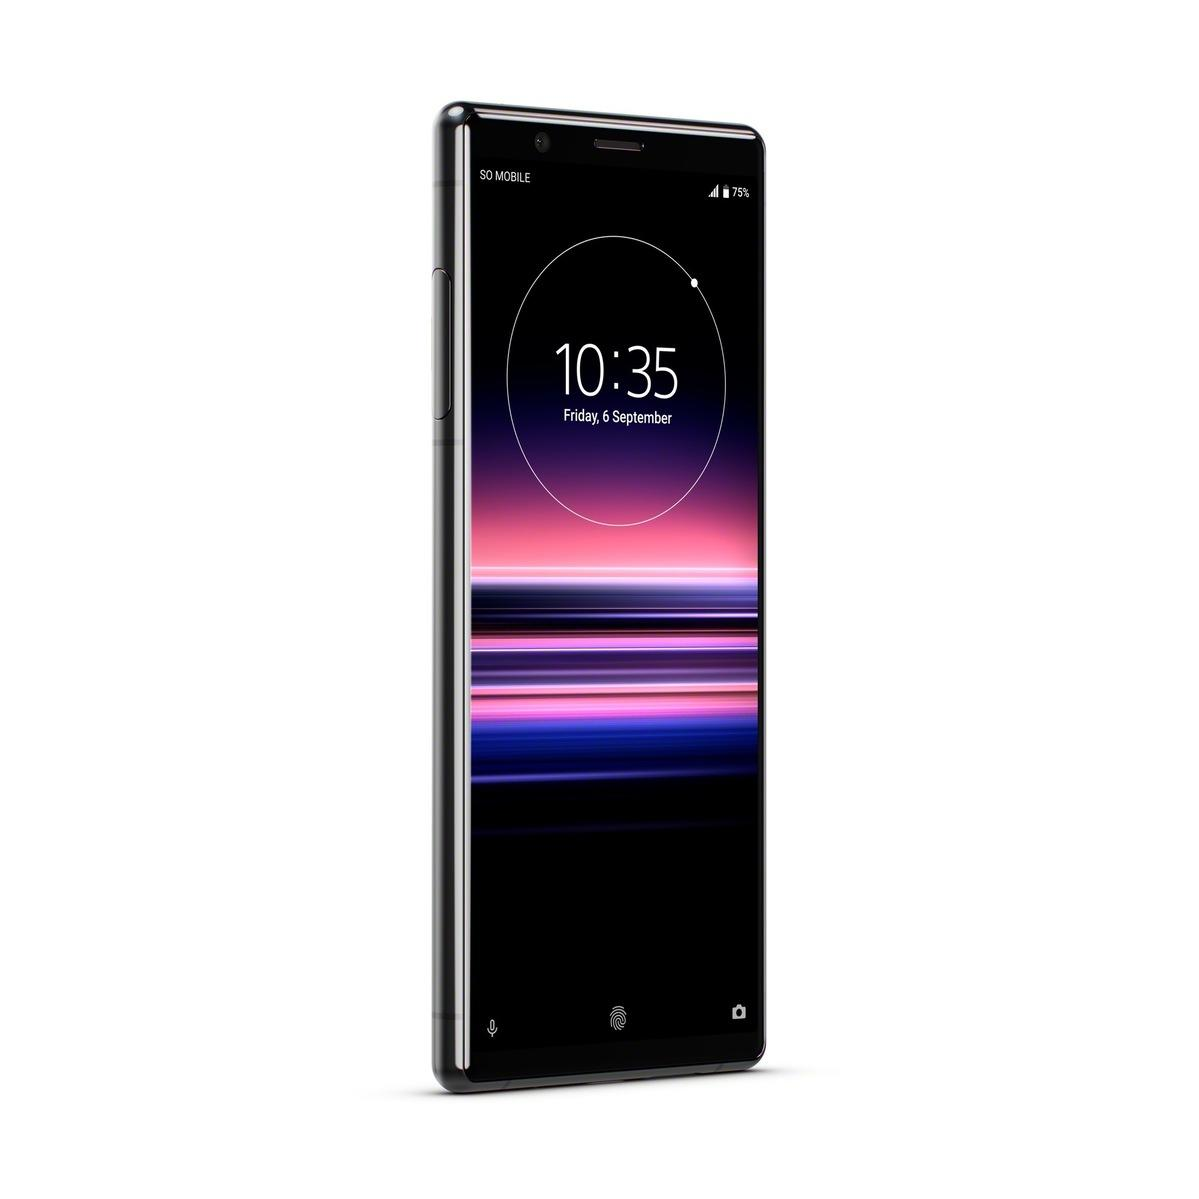 New Sony Xperia 5 Brings Camera Features From Powerful Sony Alpha Line To A Smartphone